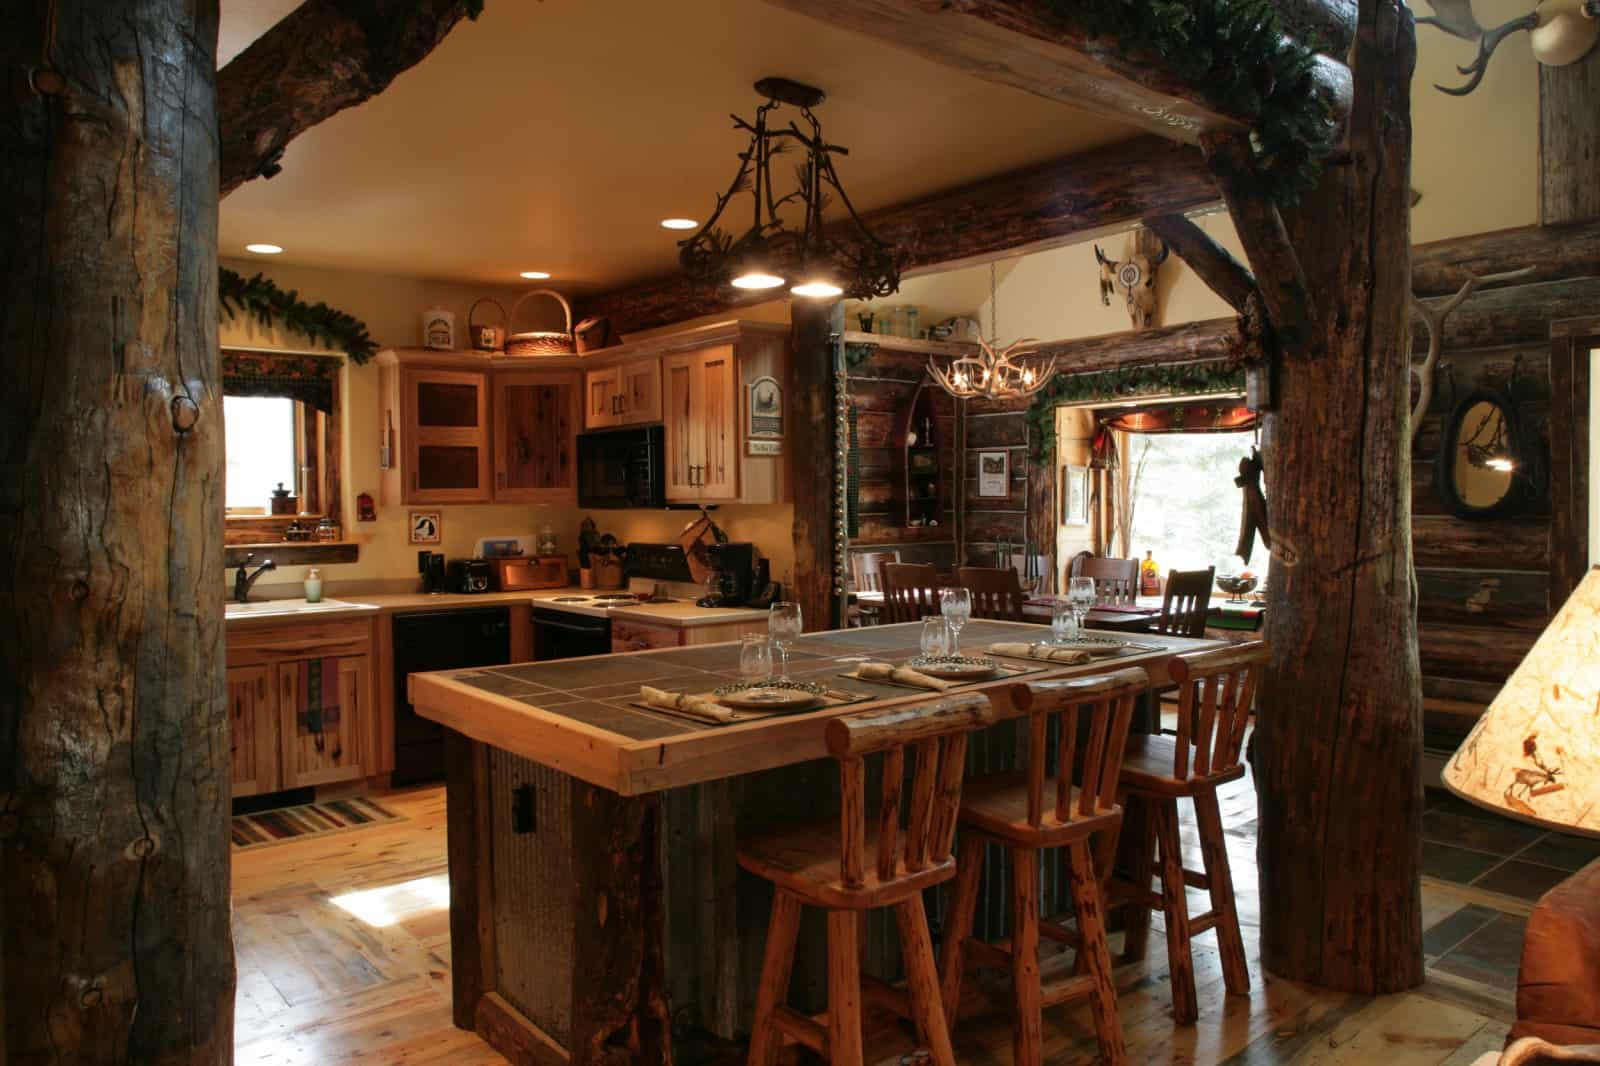 Interior design trends 2017 rustic kitchen decor house for Interior designs for log cabins